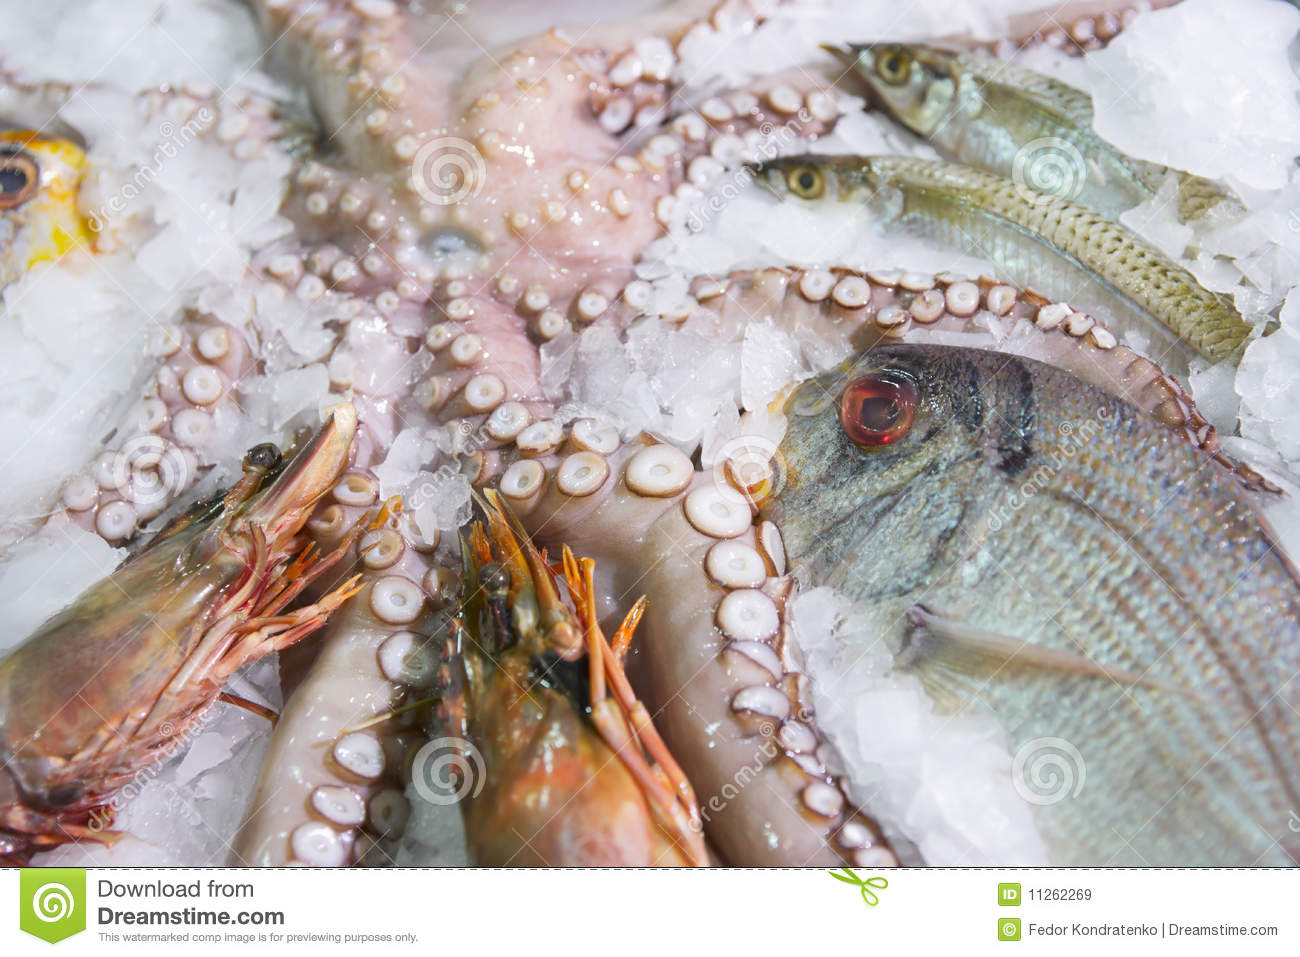 Great variety of fish and seafood stock image image for Fish and seafood